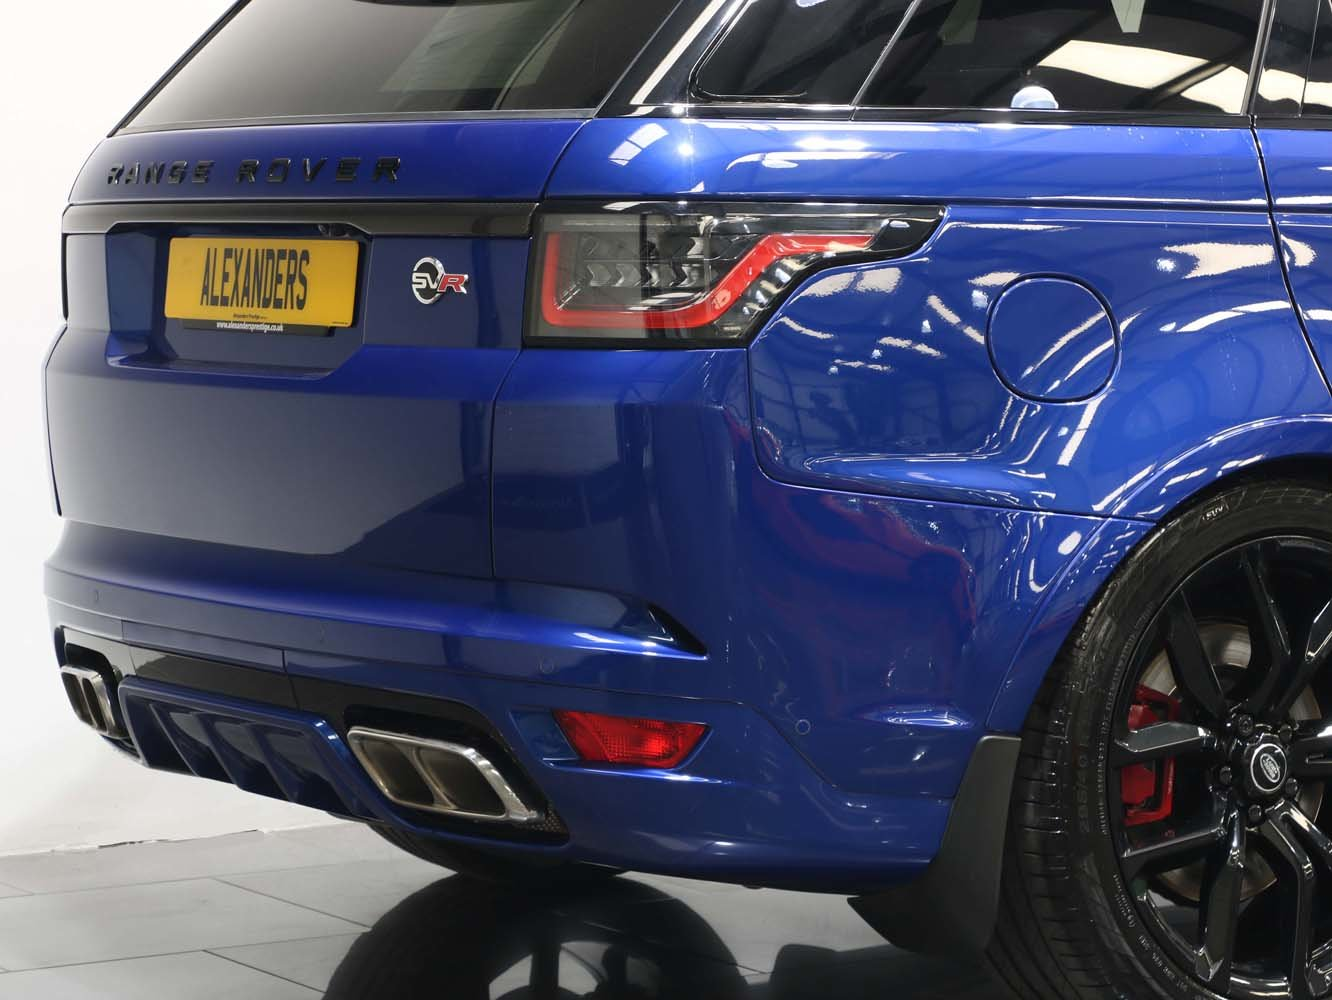 2019 19 69 RANGE ROVER SPORT 5.0 V8 SUPERCHARGED SVR AUTO For Sale (picture 3 of 6)